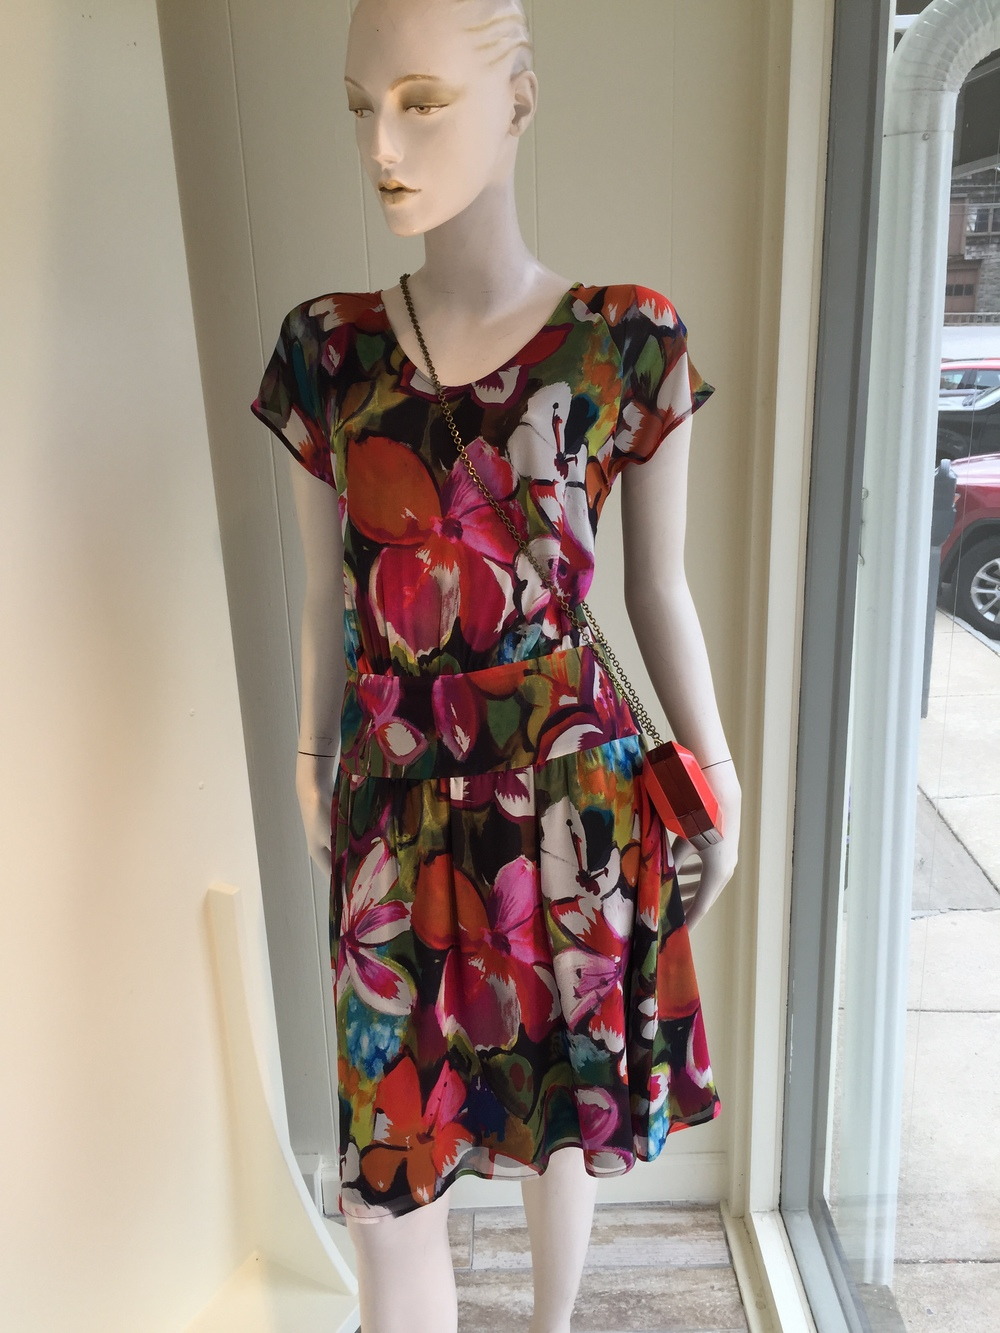 This floral chiffon print dress from Rene Lezard it really beautiful with it's drop waist line.  This one can be an occasion dress or just an easy summer dress with a sandal.